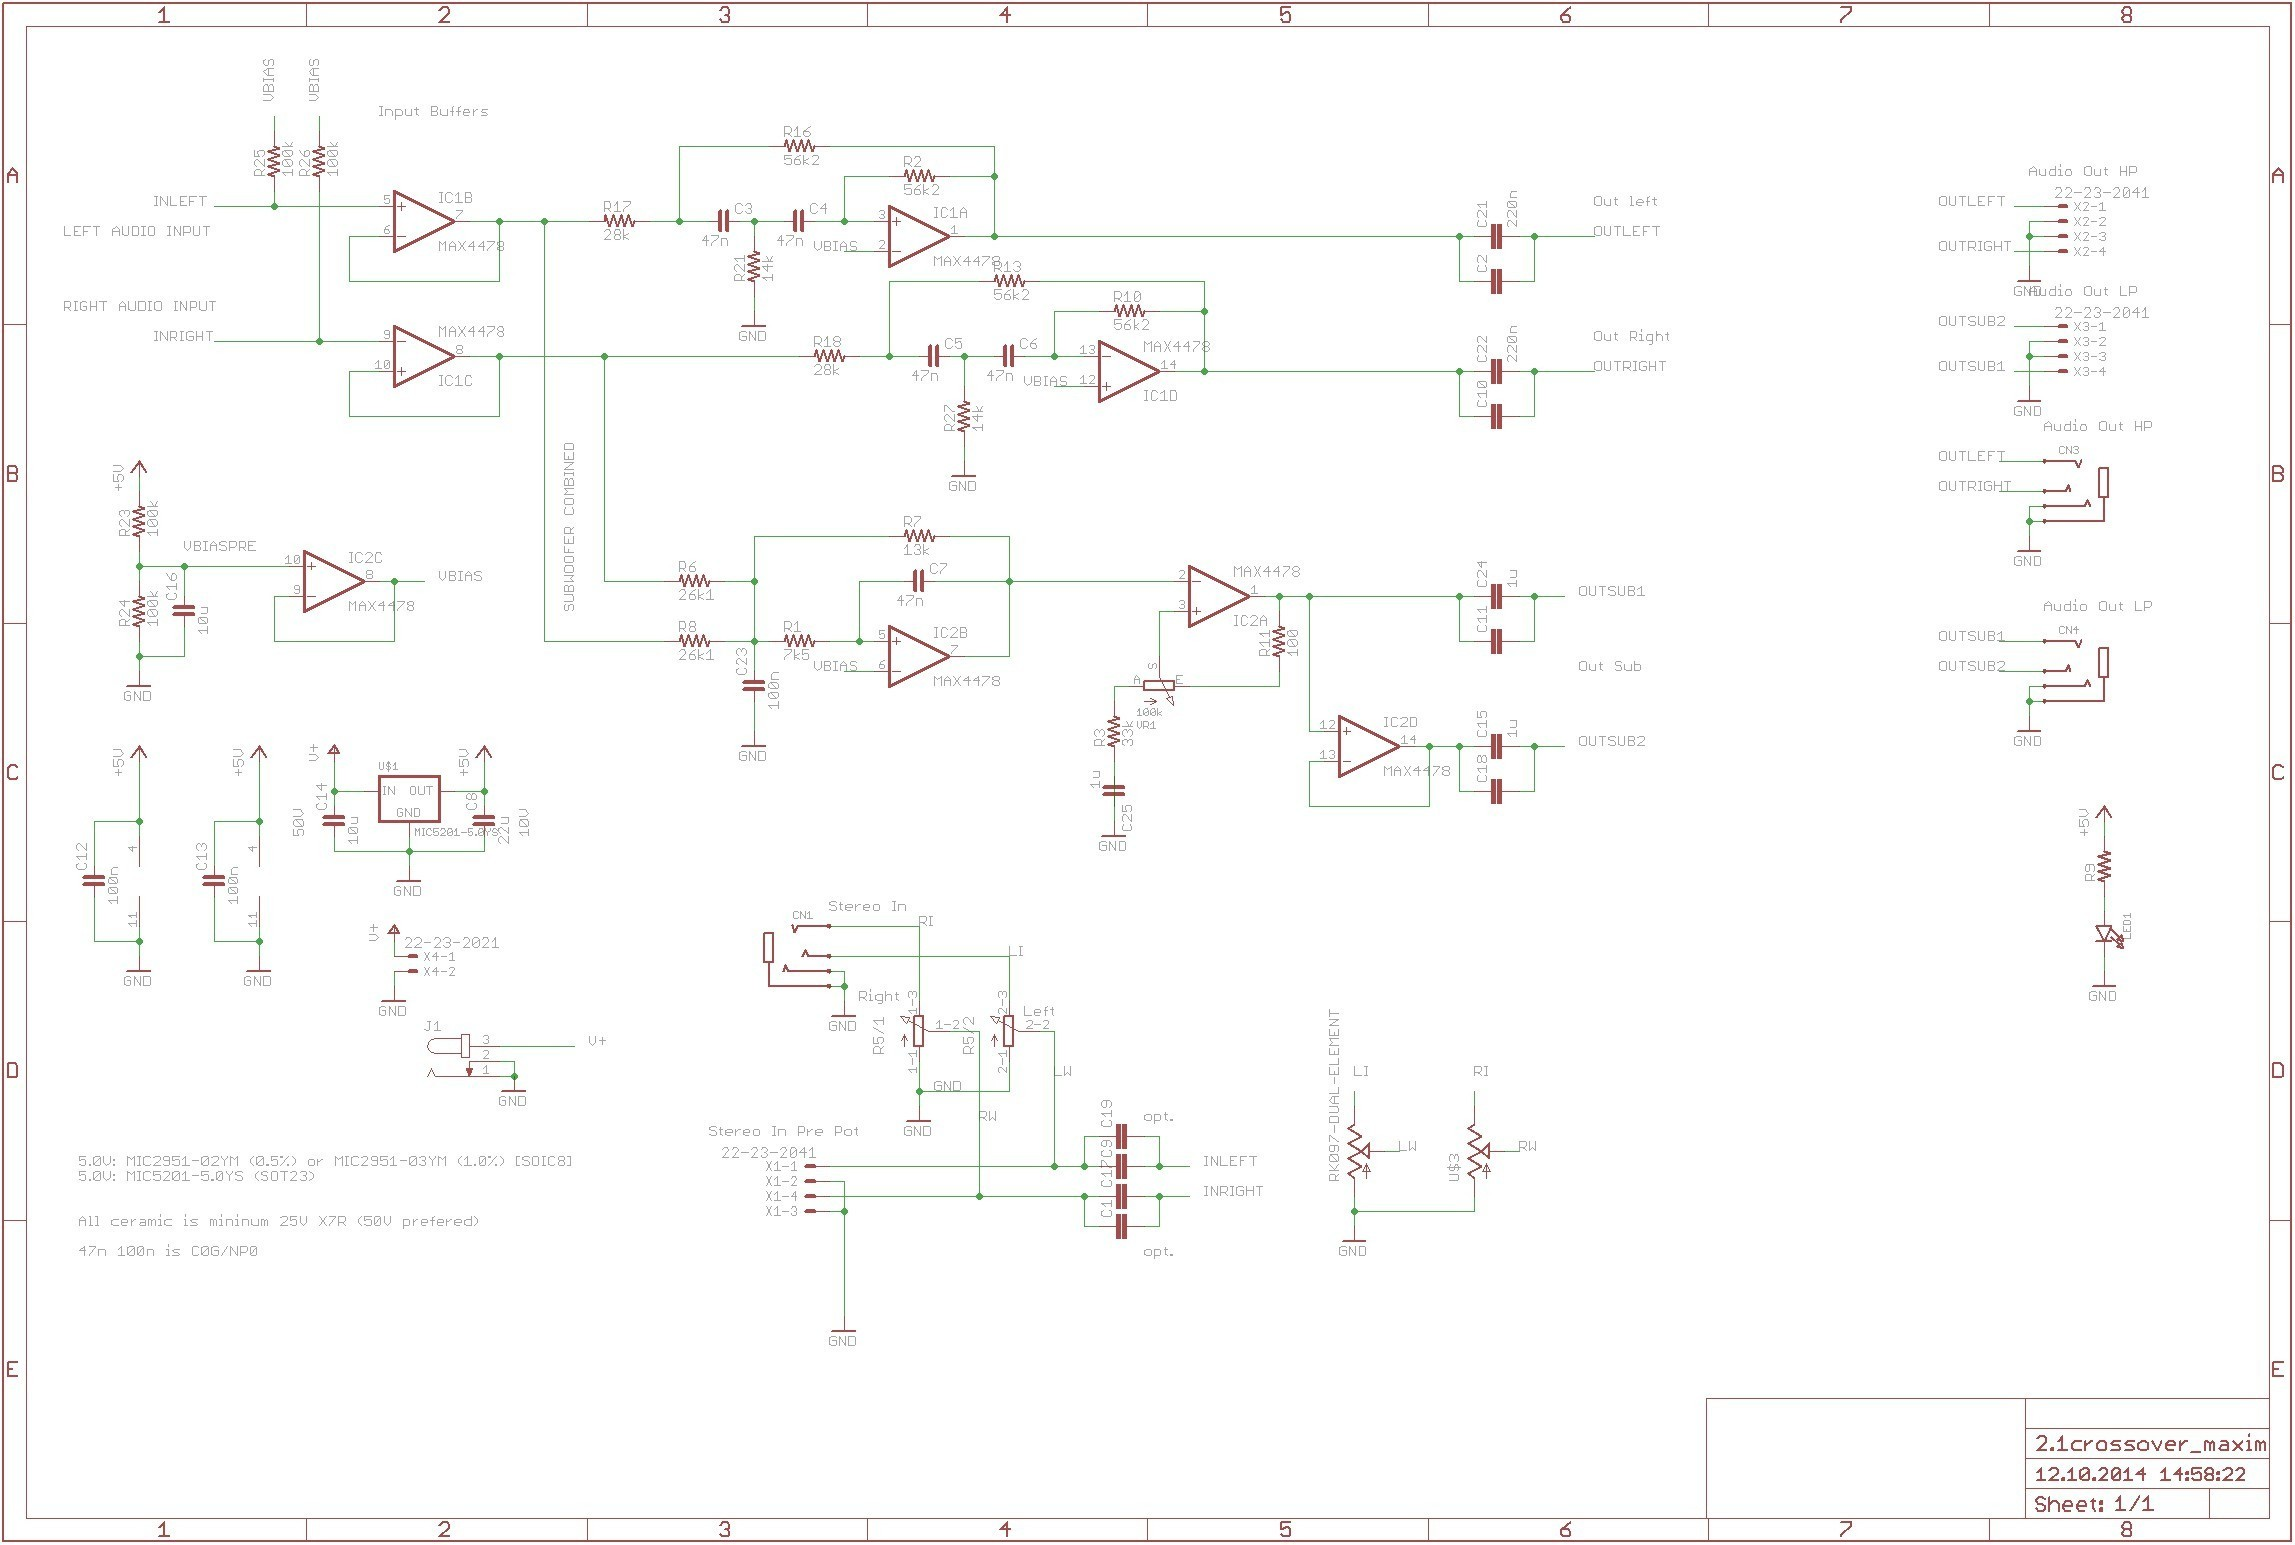 T3 Light Fixture Wiring Diagram Electrical Schematics Lithonia Lighting Dimmer Switch New Image Heater